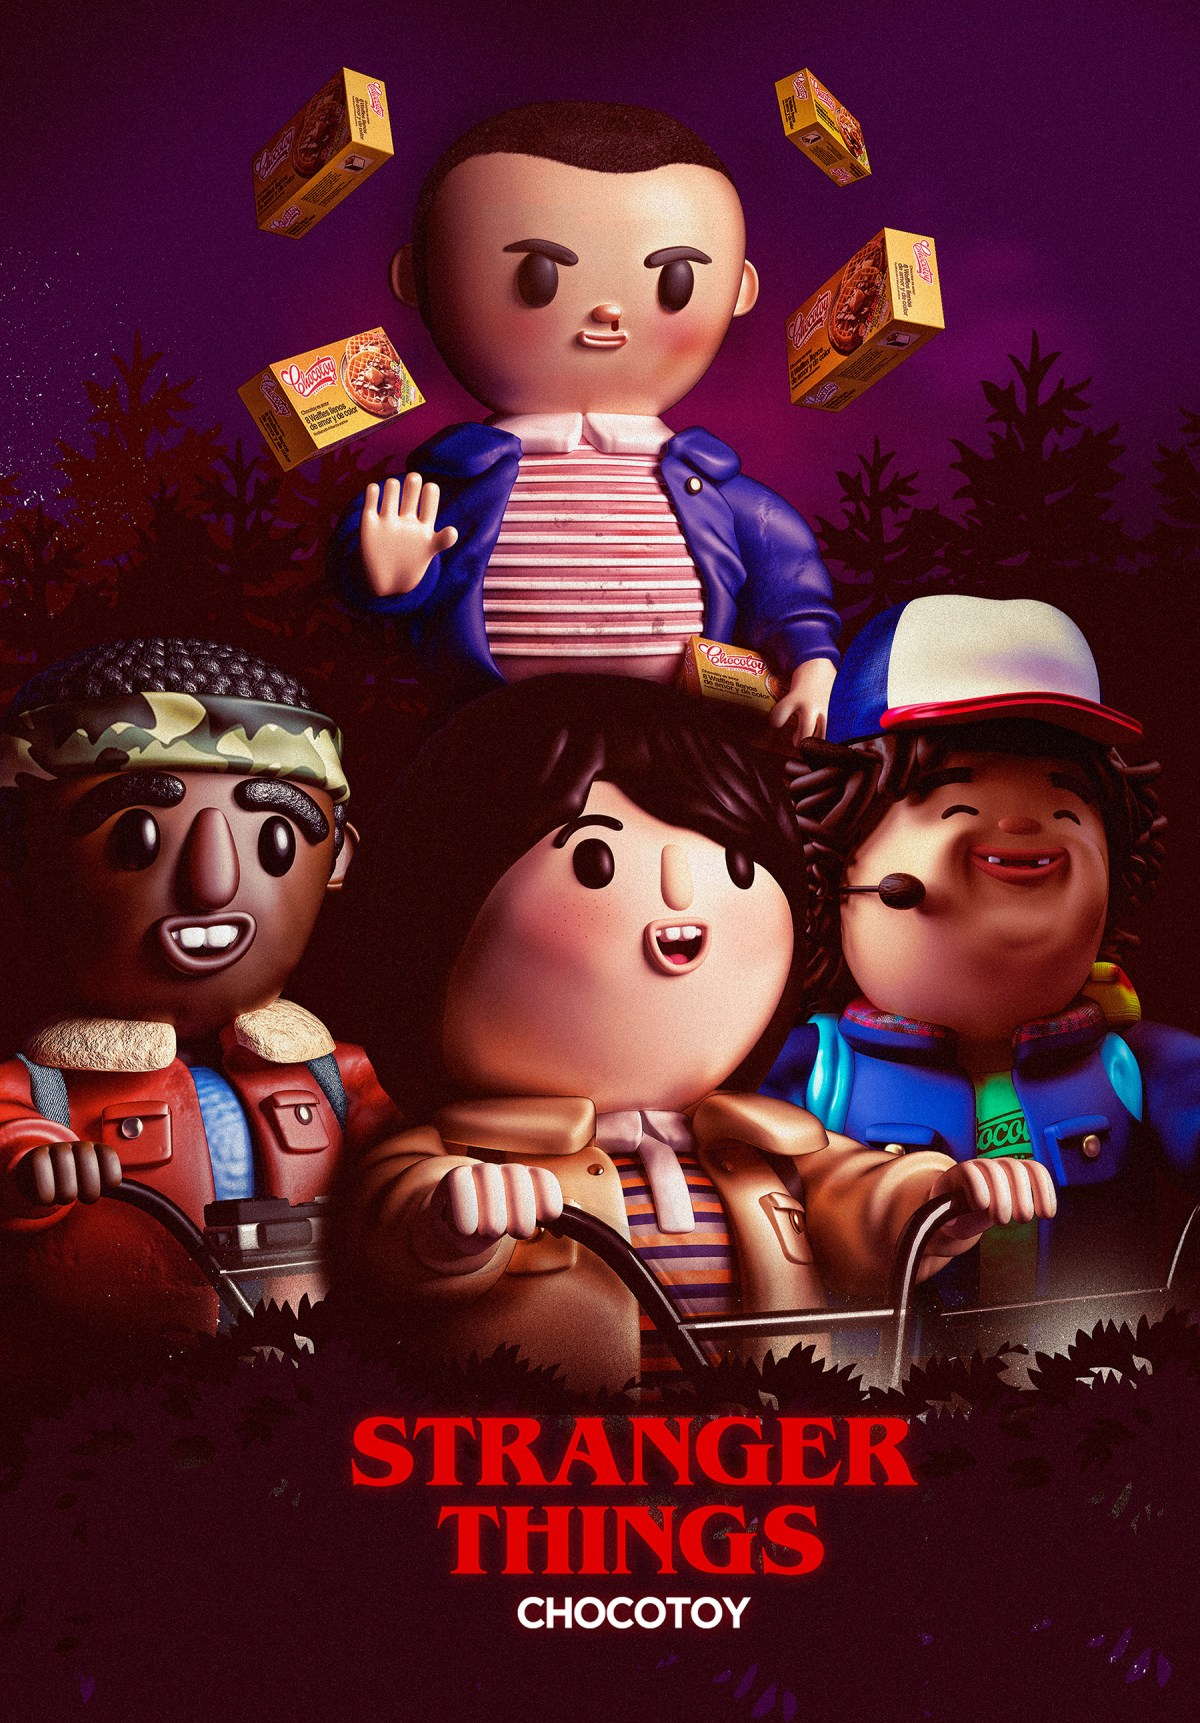 stranger-things-chocotoy-moss-and-fog-4